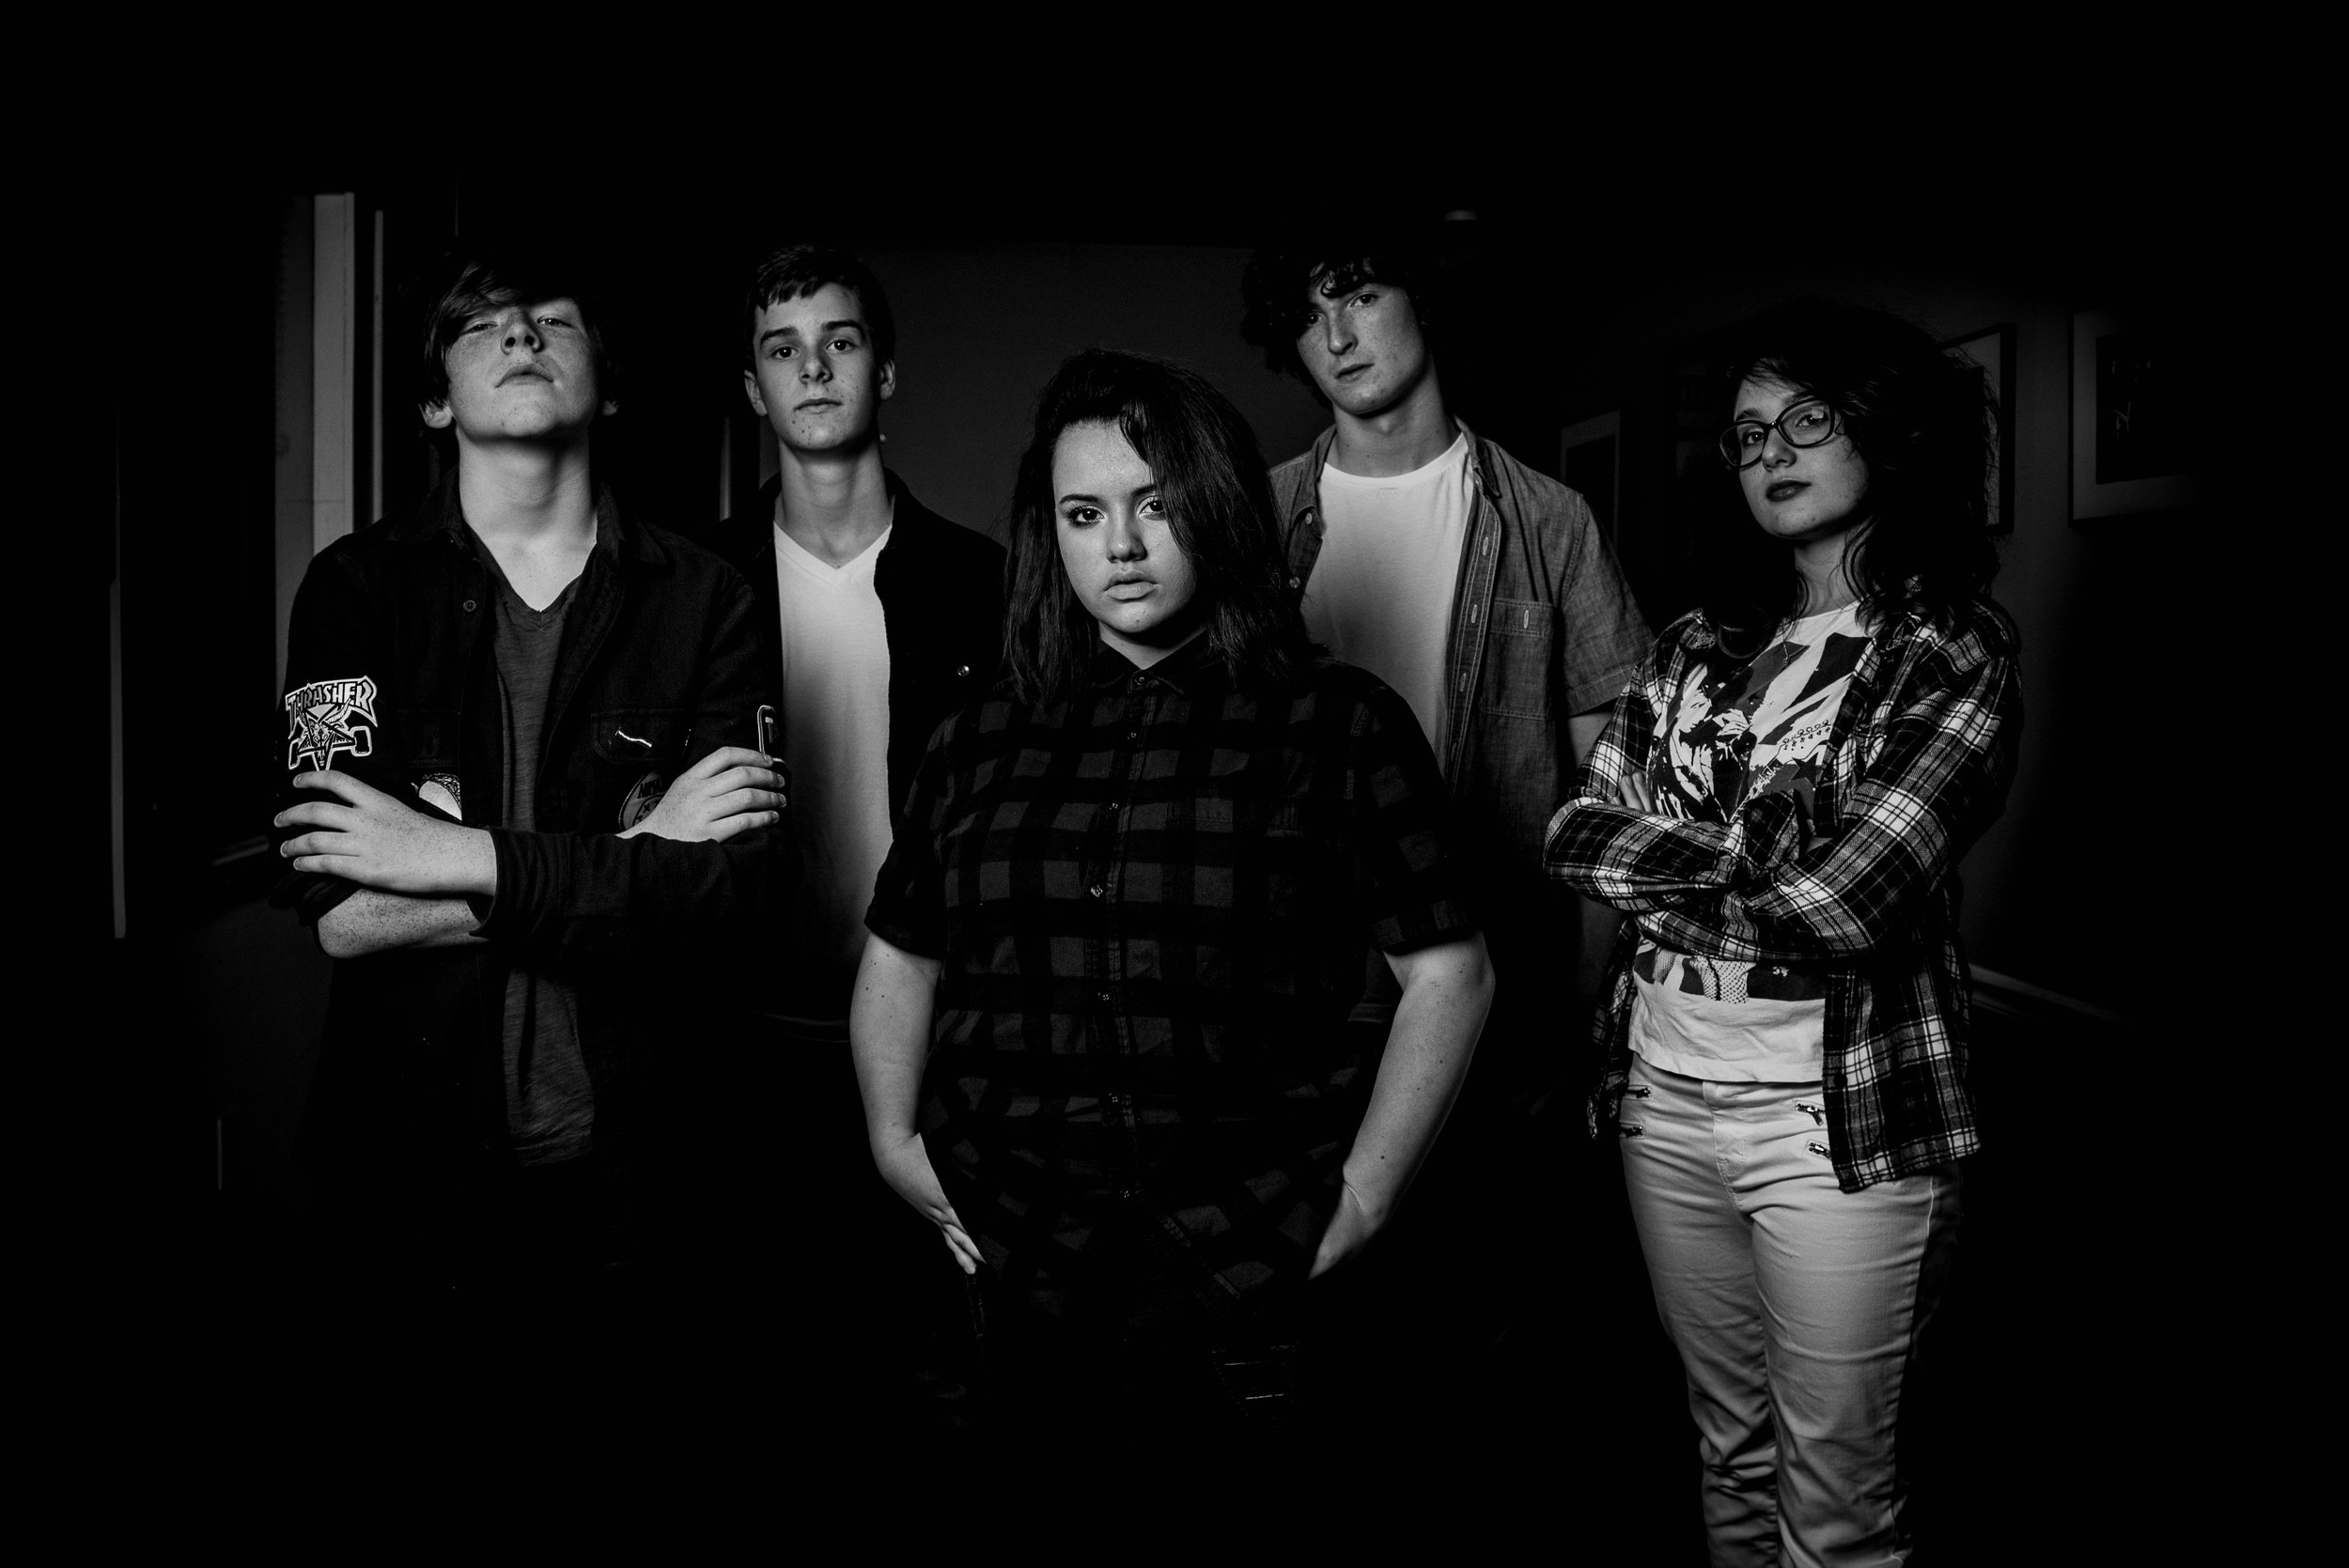 Left to Right: Dylan Monaghan (Guitar), Sam Keister (Guitar), Alexis Corcoran (Vocals), Nate Quasha (Drums), Aimee Schwartz (Bass)